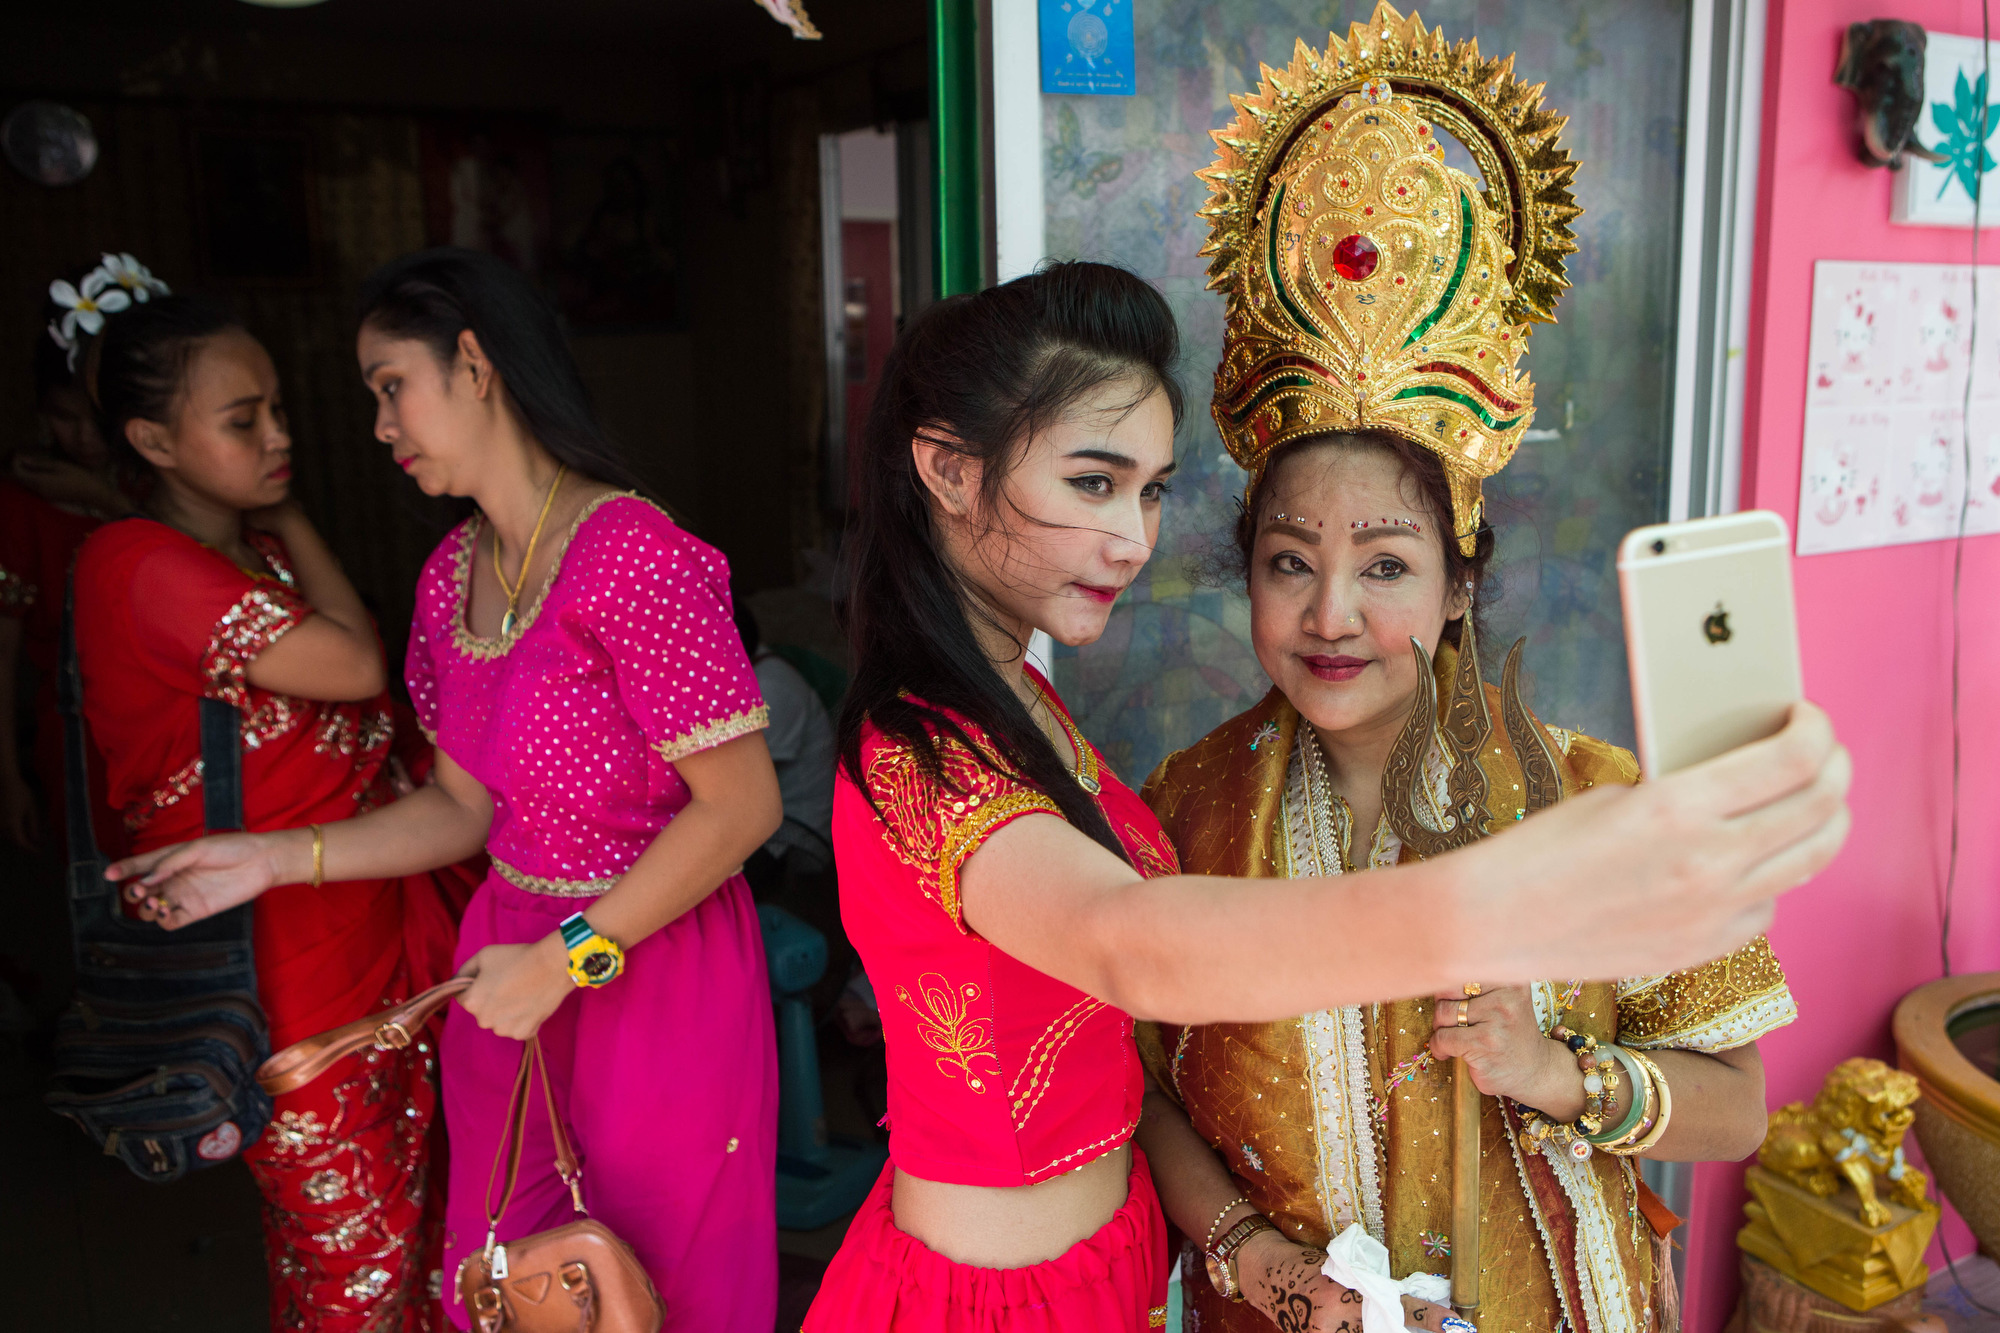 Mama Ning, right, takes photos with her followers before her wai khru ceremony begins in Bangkok on March 21, 2016.